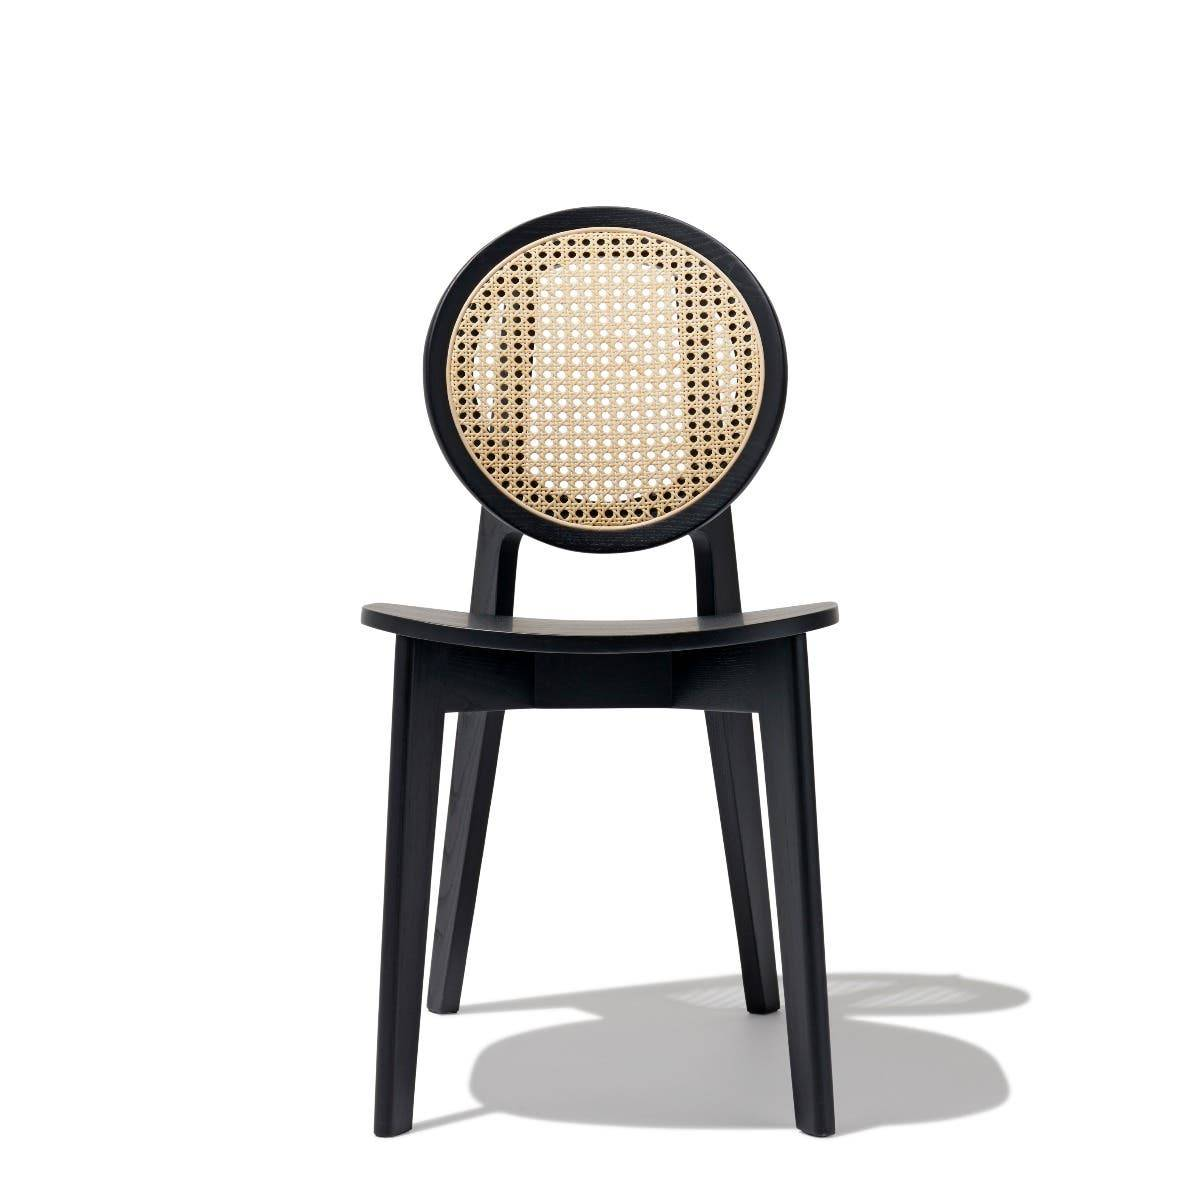 Industry West Cane 02 Dining Chair